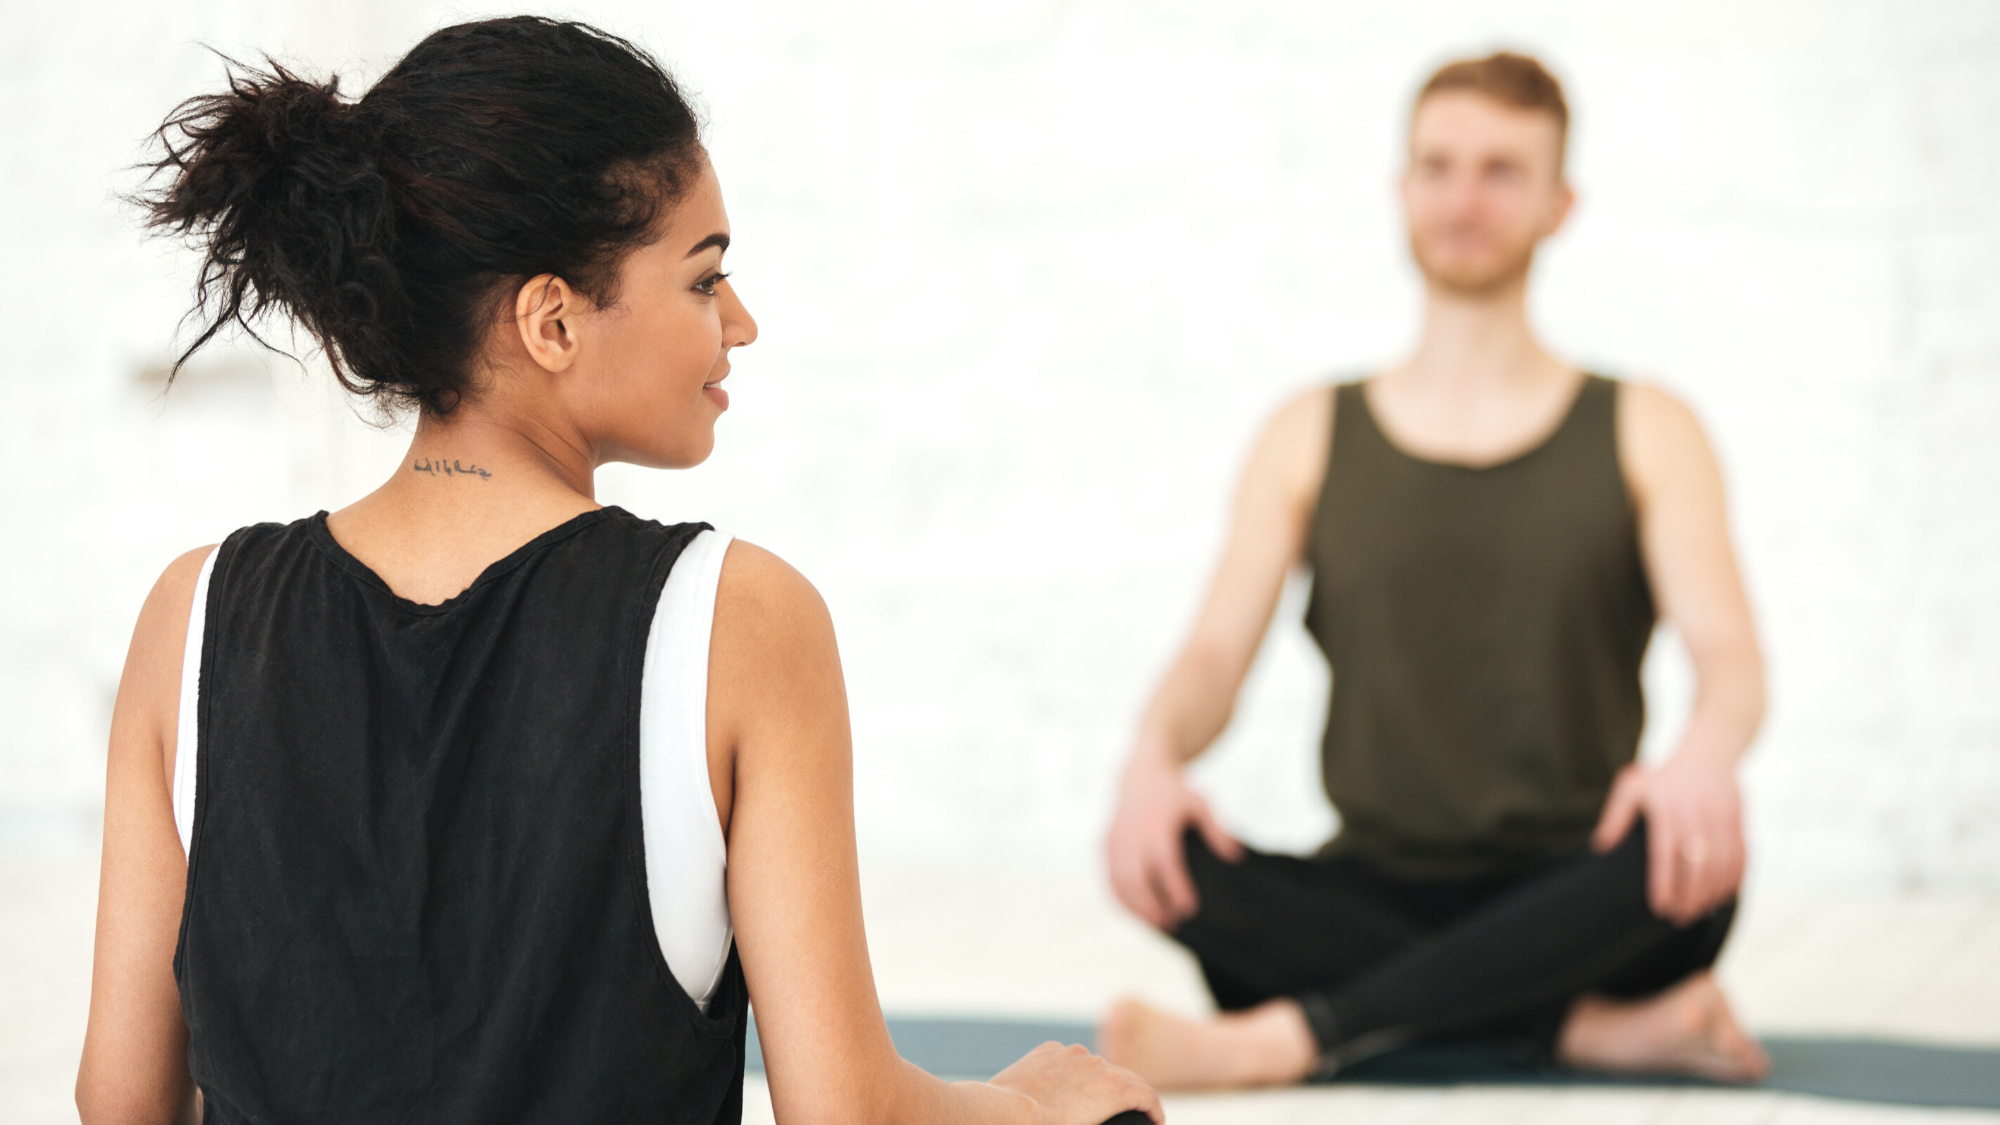 Female yoga teacher guiding her yoga student in mindful practice.